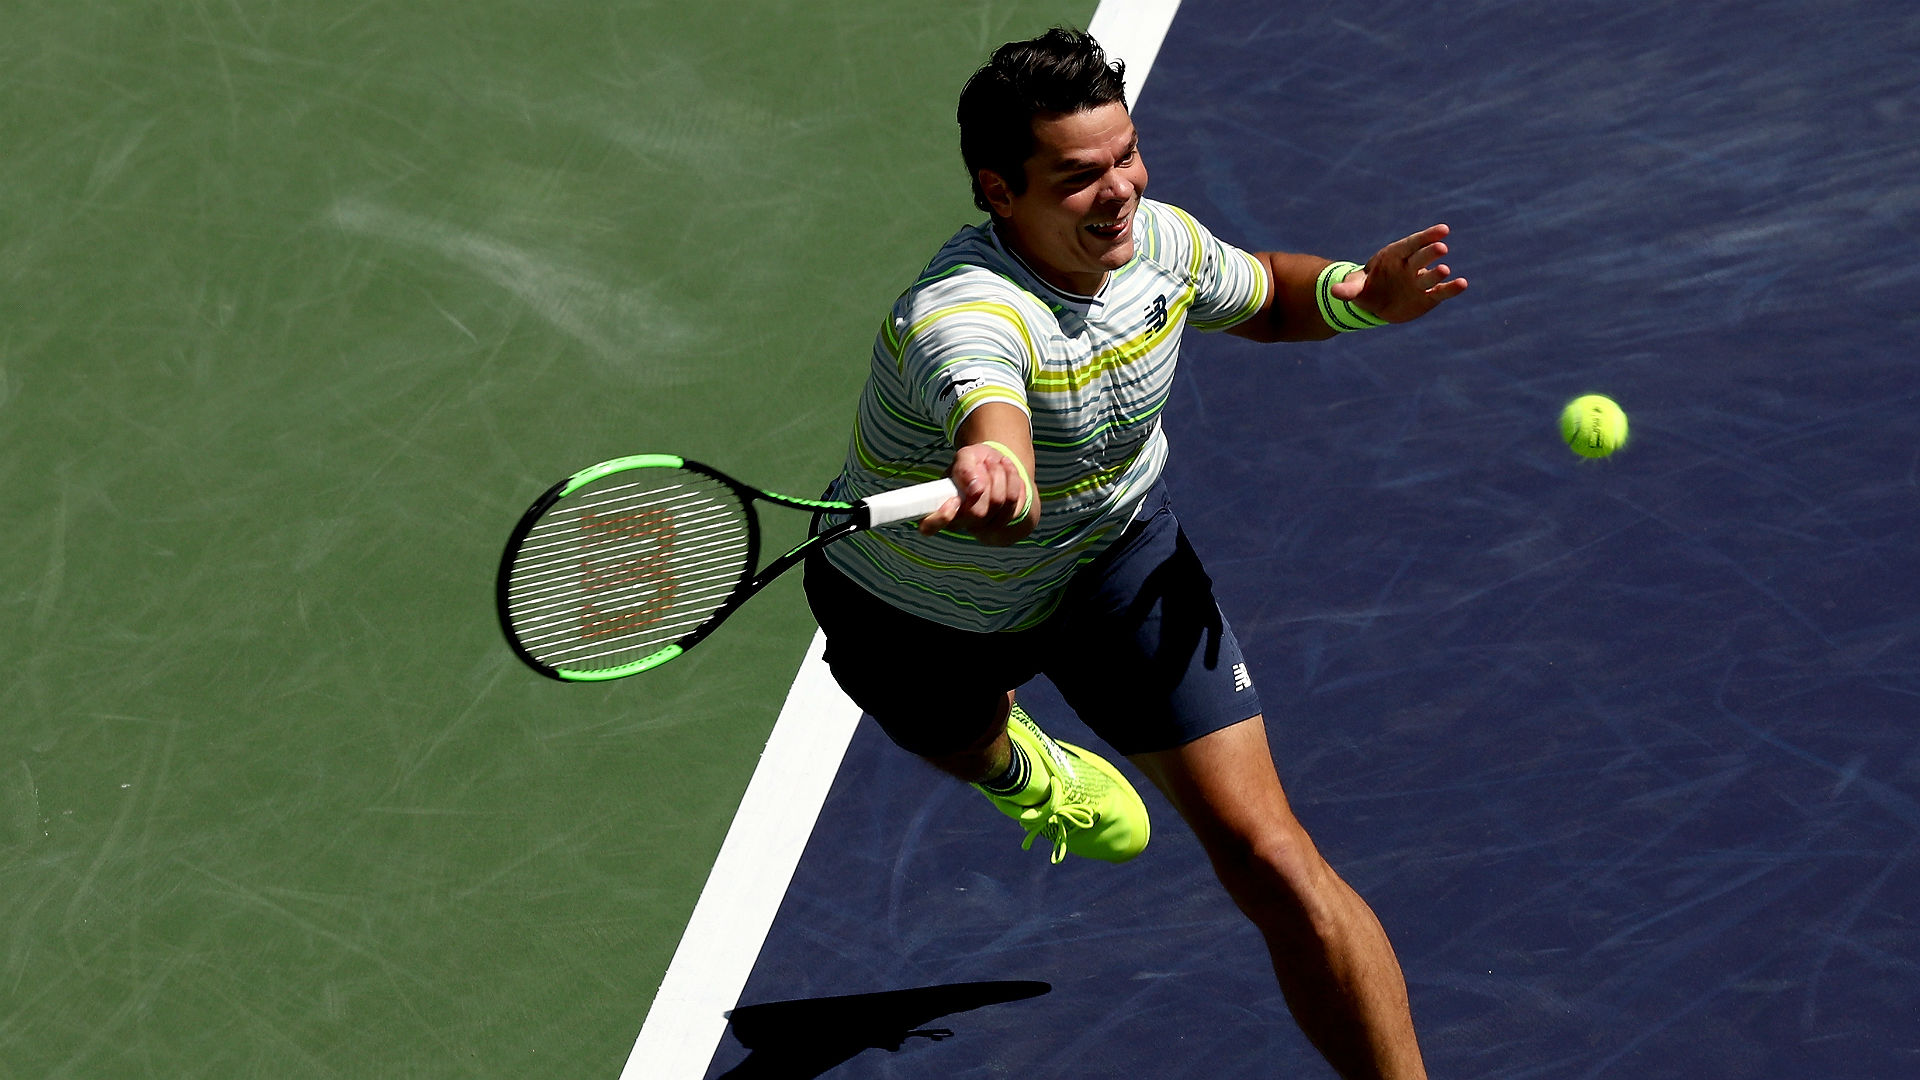 Defending champion Roger Federer reaches BNP Paribas Open final